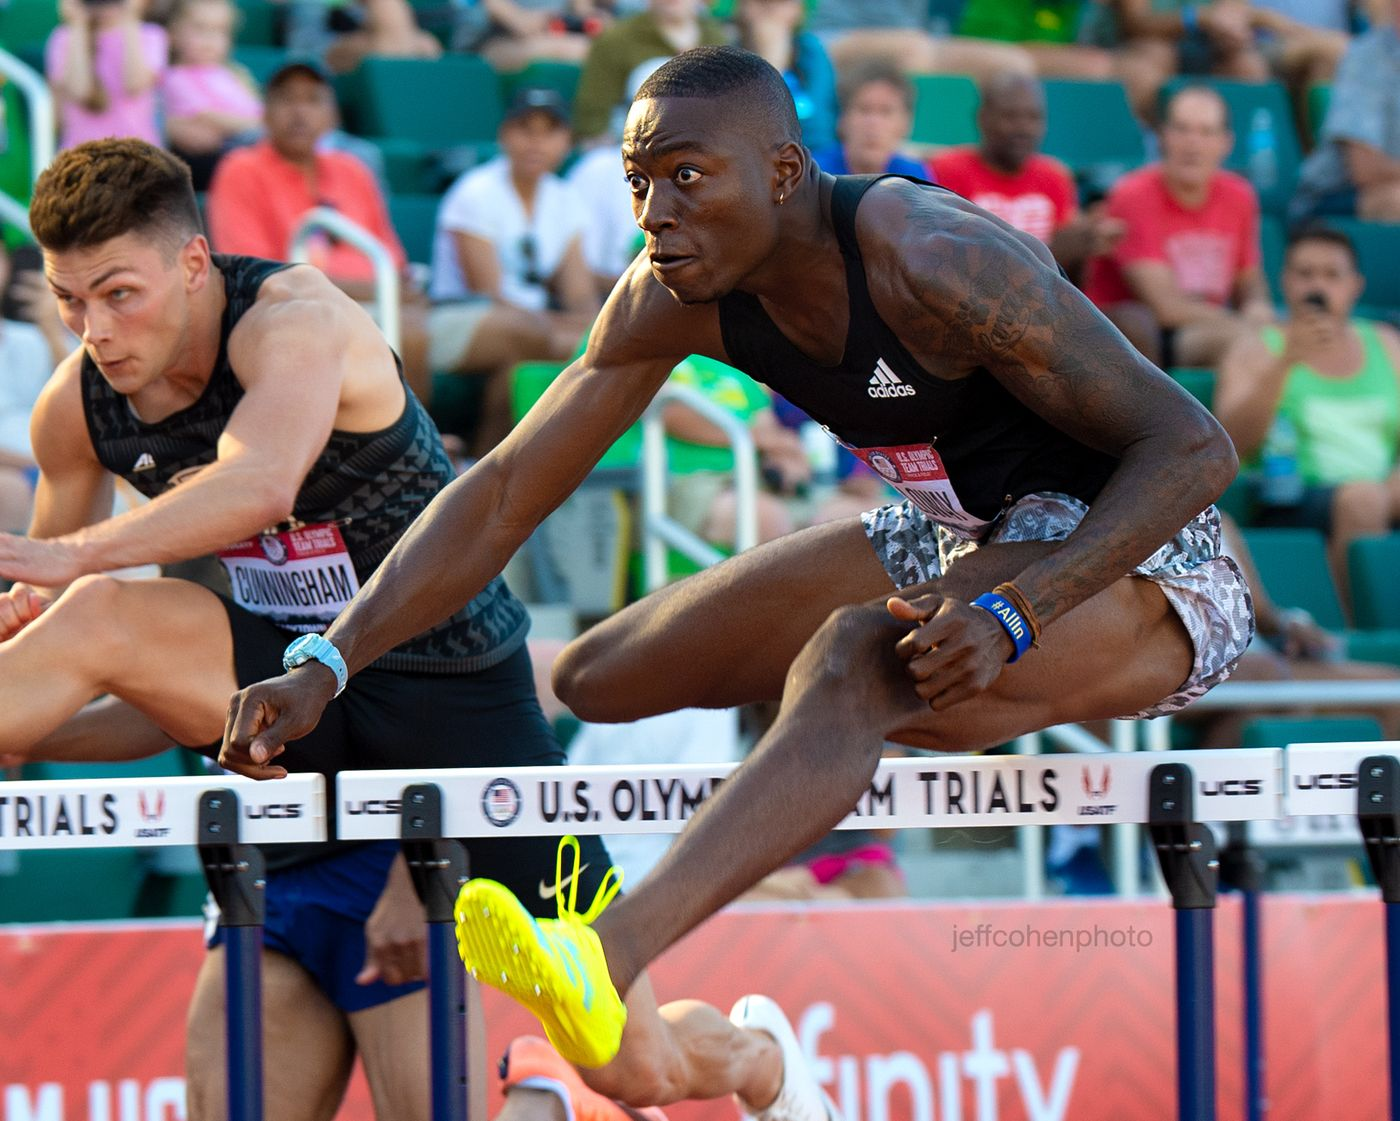 holloway-110hm-2021-US-Oly-Trials--day-7-180-jeff-cohen-photo---copy-web.jpg